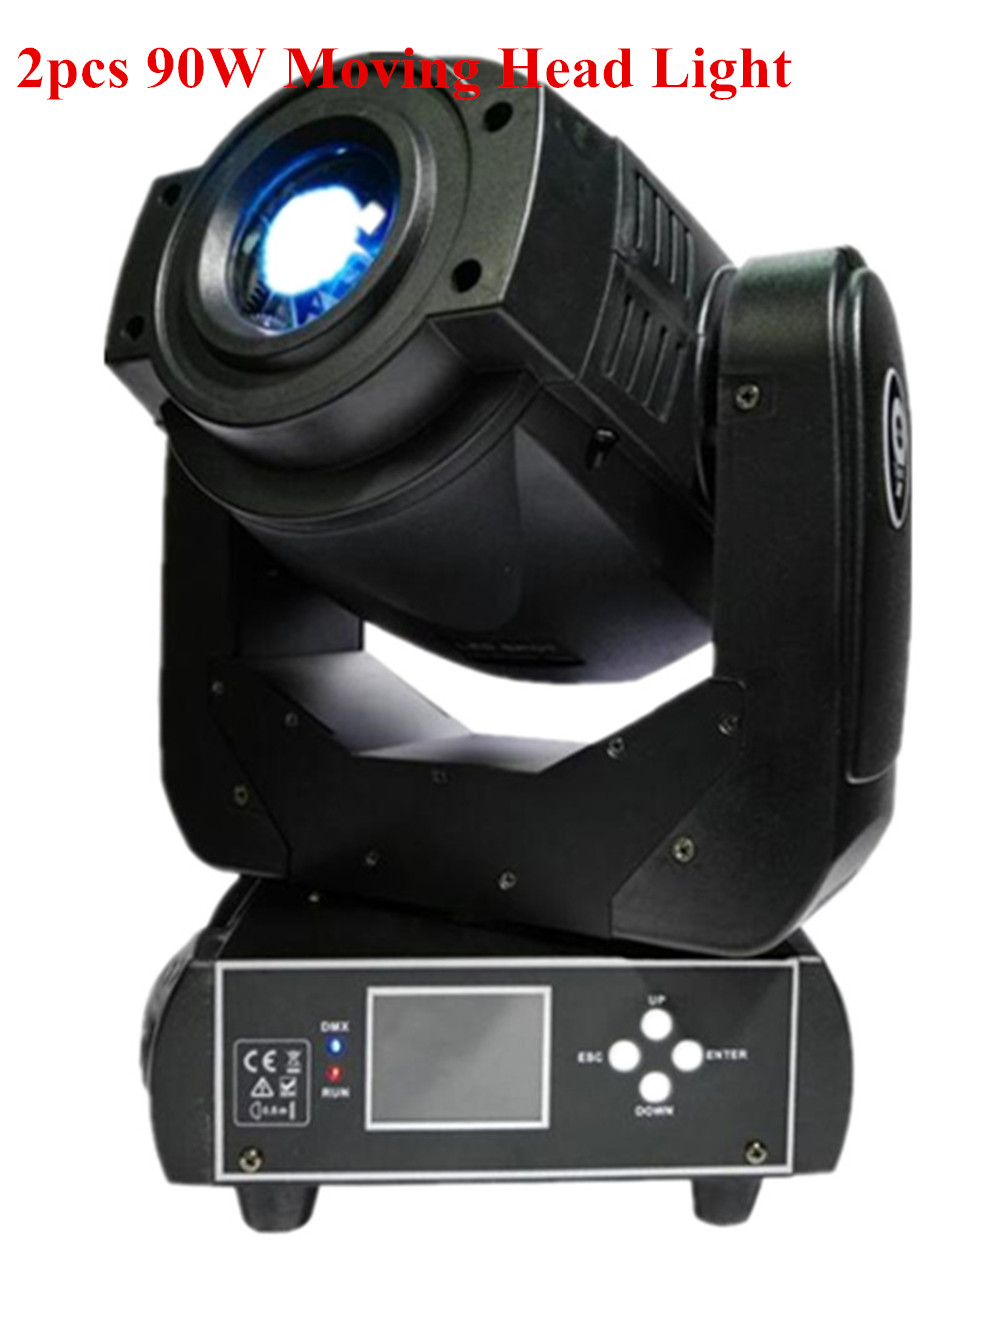 Hot sale!90W Gobo LED Moving Head Light 3 Face Prism DMX Controller 6/16 Channel for Stage Theater Disco Nightclub Party/SX-MH90 niugul dmx stage light mini 10w led spot moving head light led patterns lamp dj disco lighting 10w led gobo lights chandelier